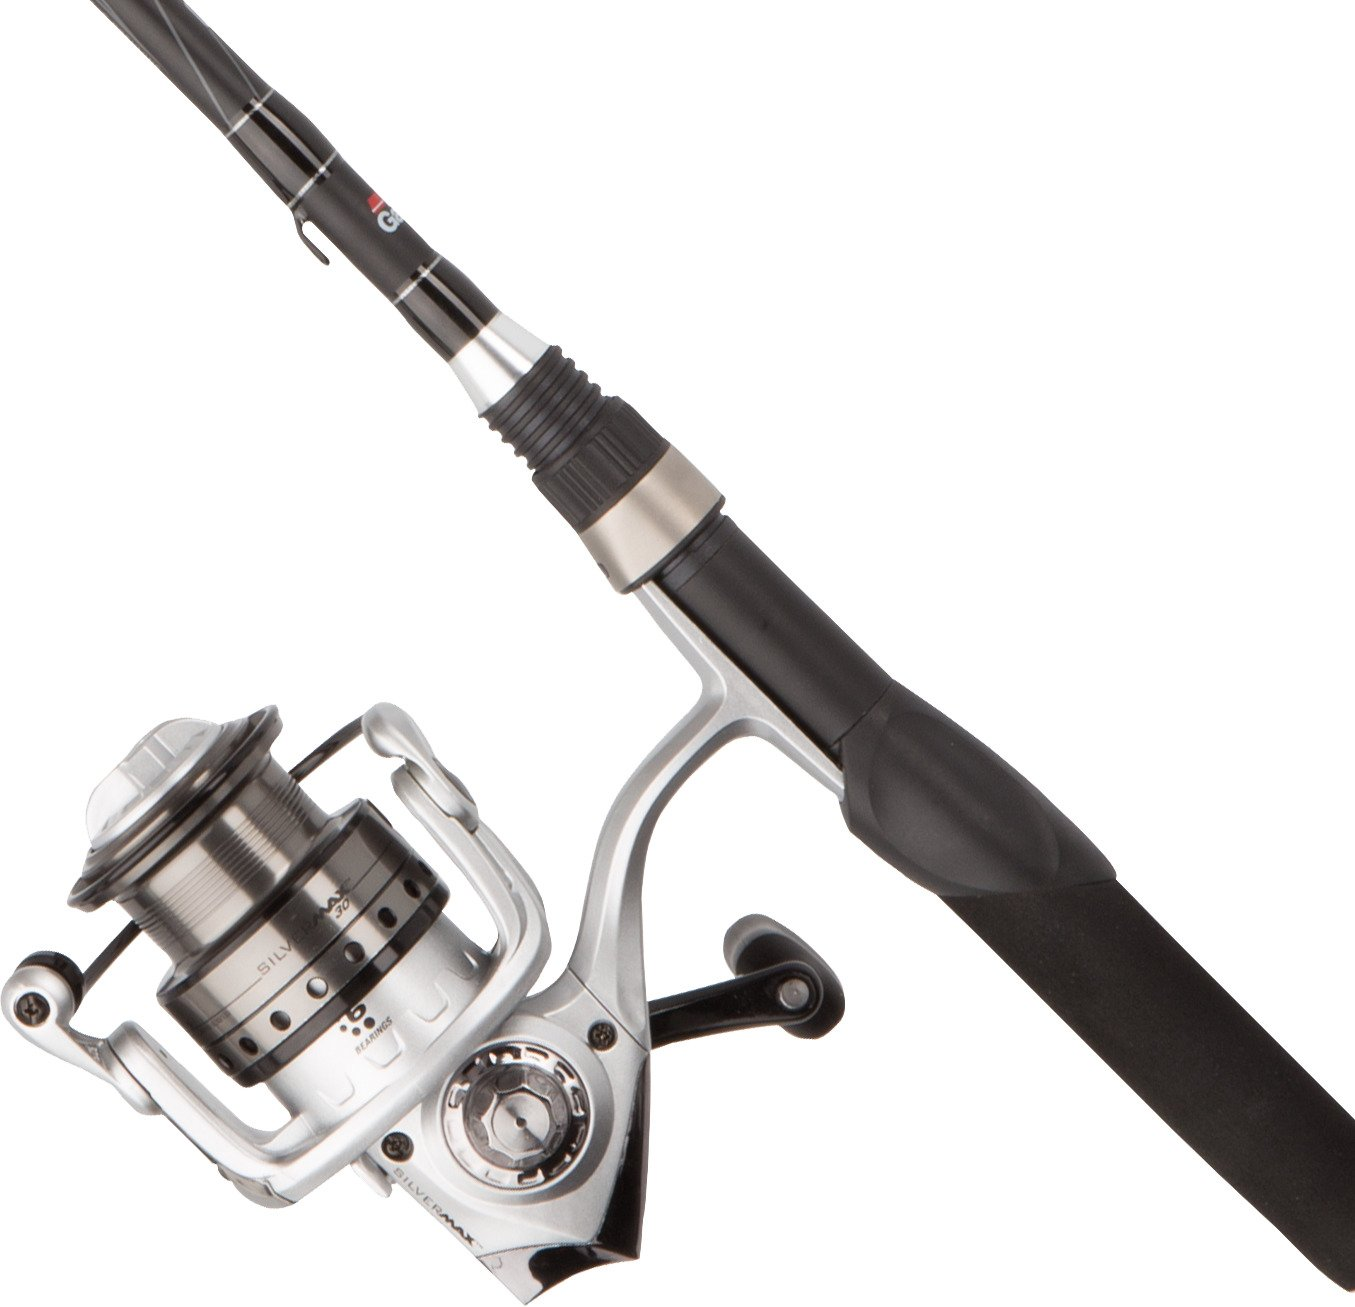 Abu Garcia® Silver Max® 7' M Spinning Rod and Reel Combo - view number 4